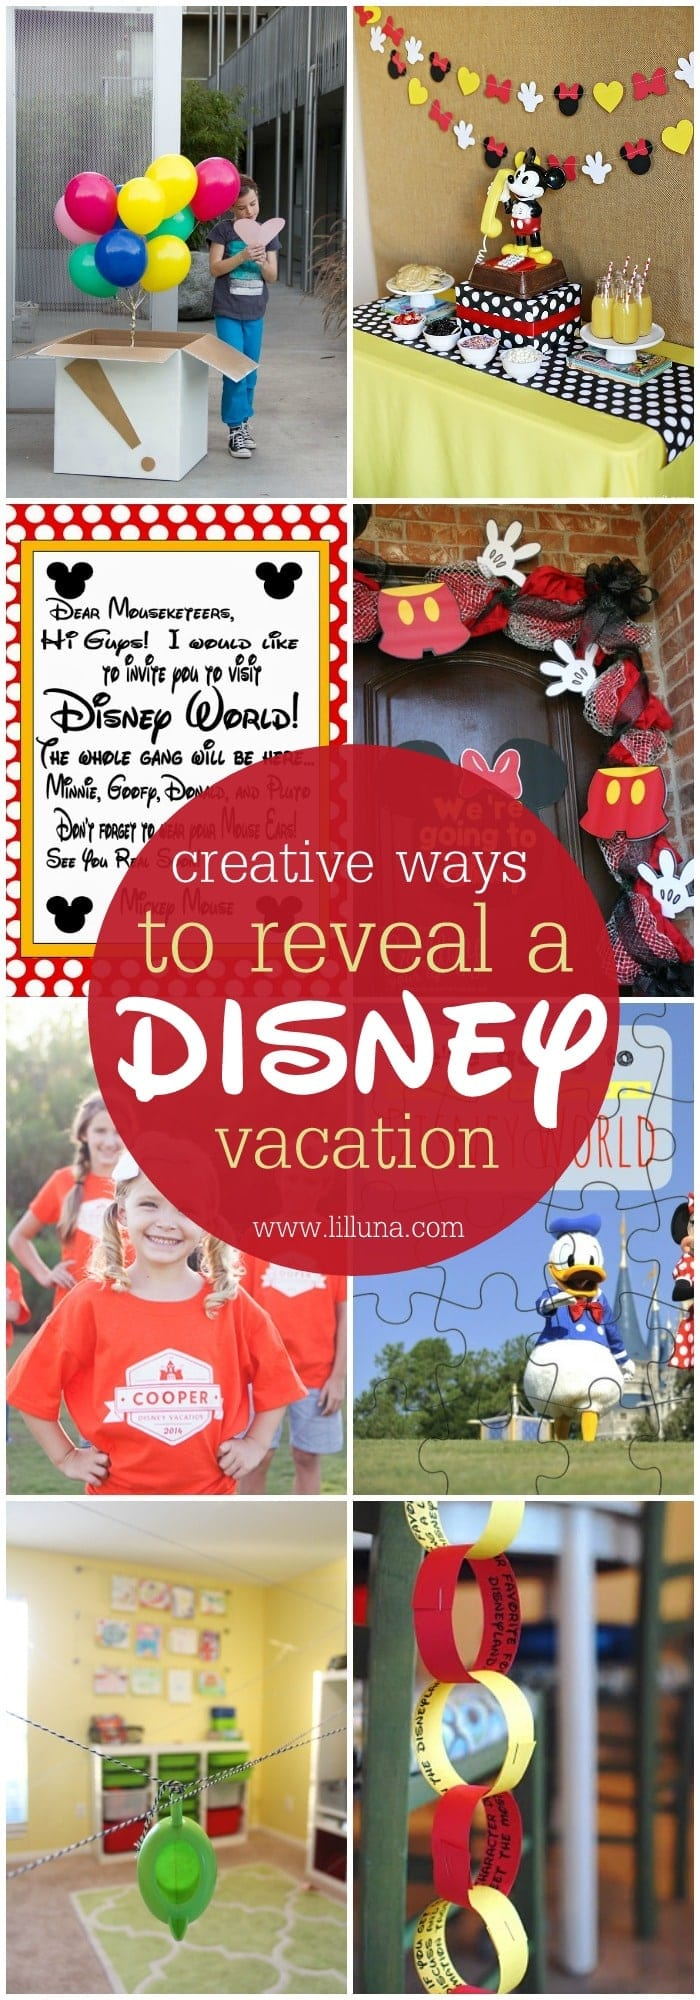 10 Creative Ways to Reveal a Disney Vacation - so many great ideas!! Saving this list for our trip to the Happiest Place on the Earth!